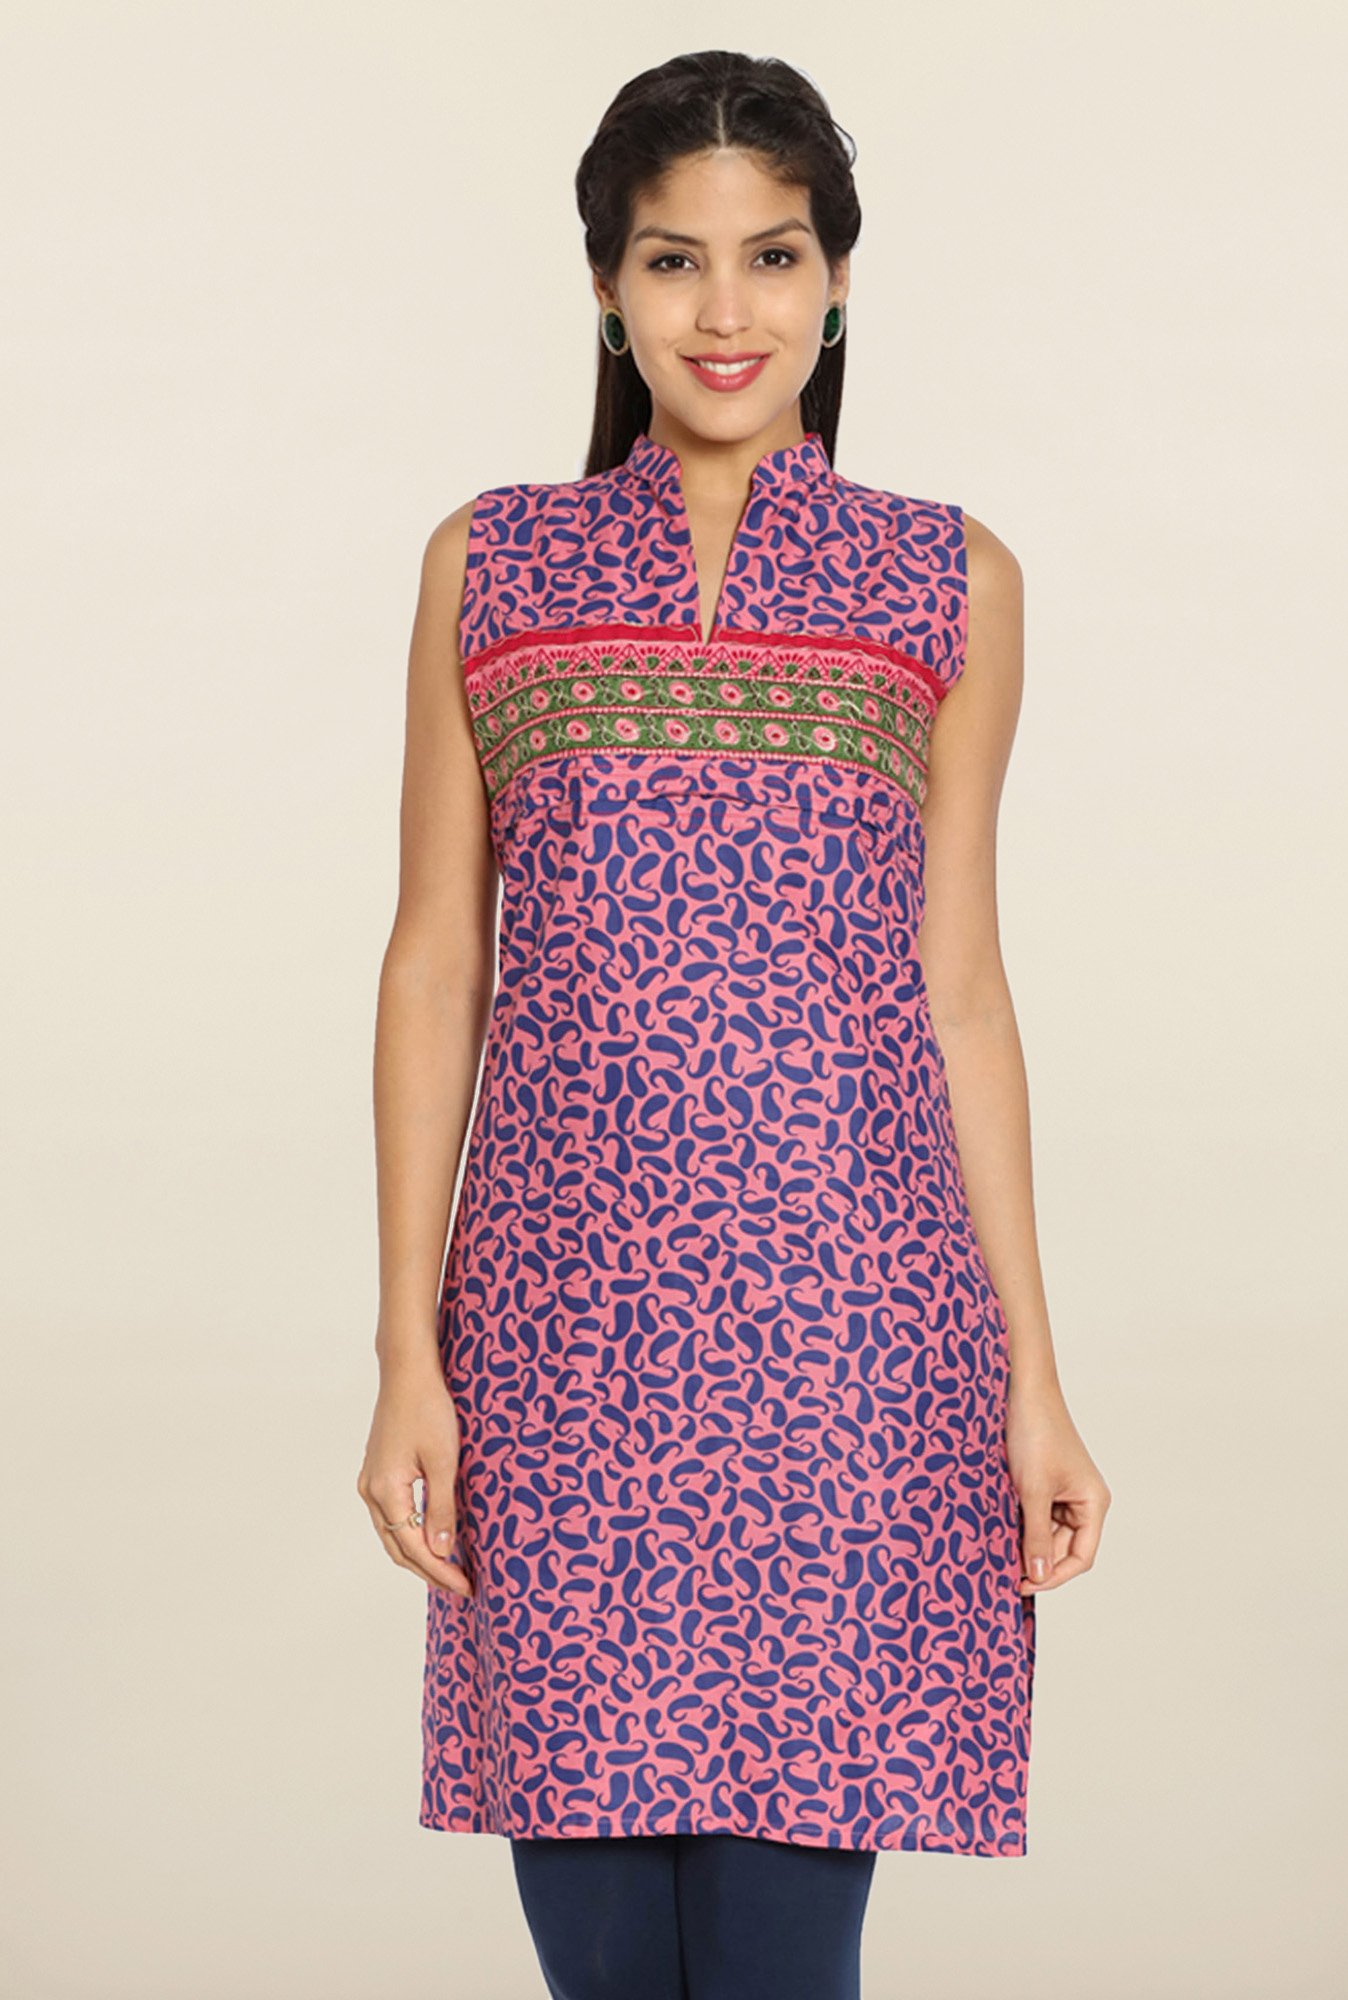 Soch Pink & Blue Printed Cotton Kurti